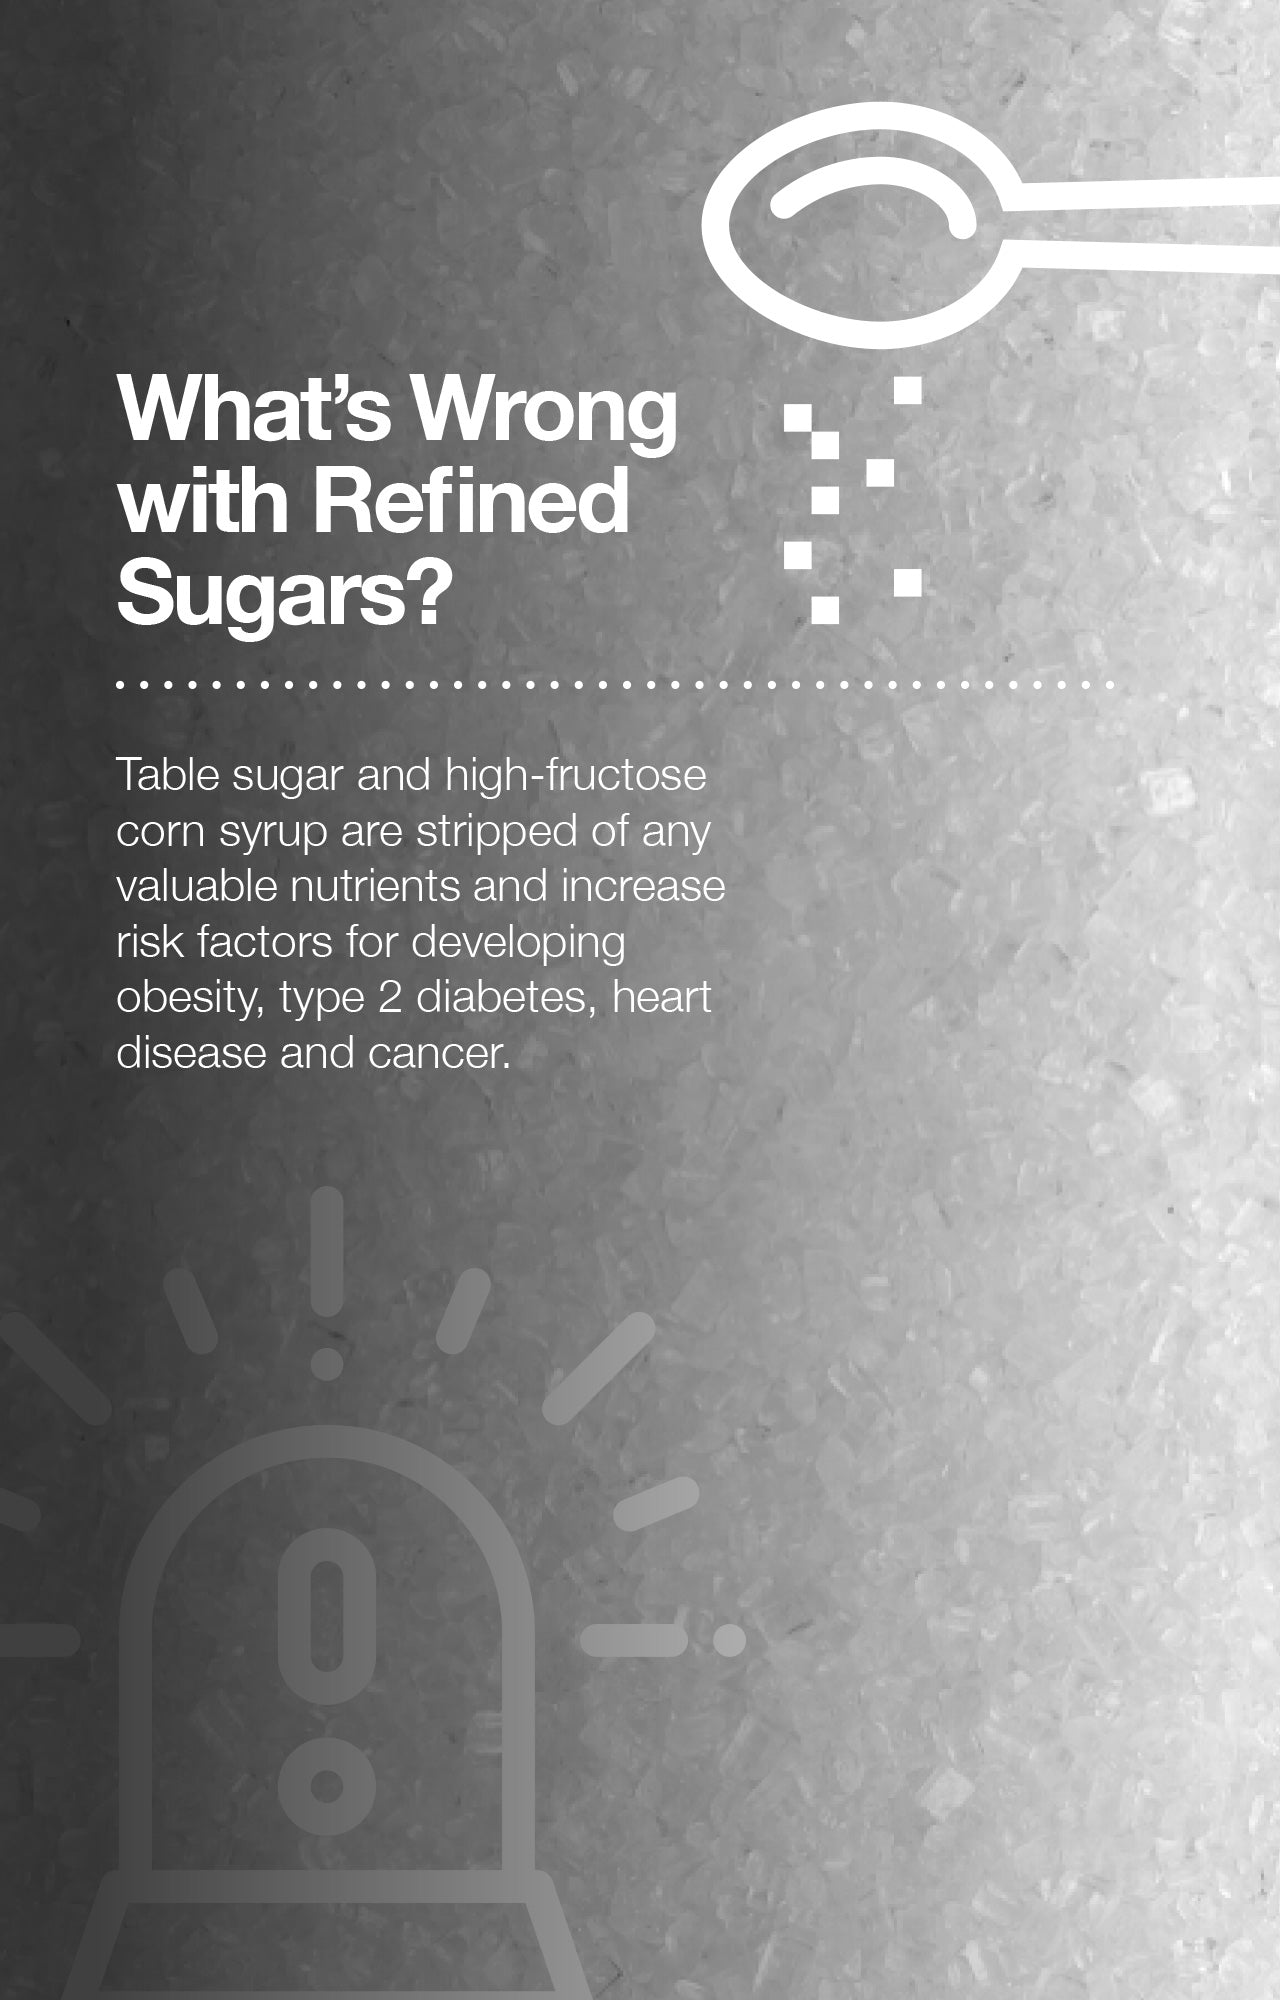 What's Wrong with Refined Sugars?